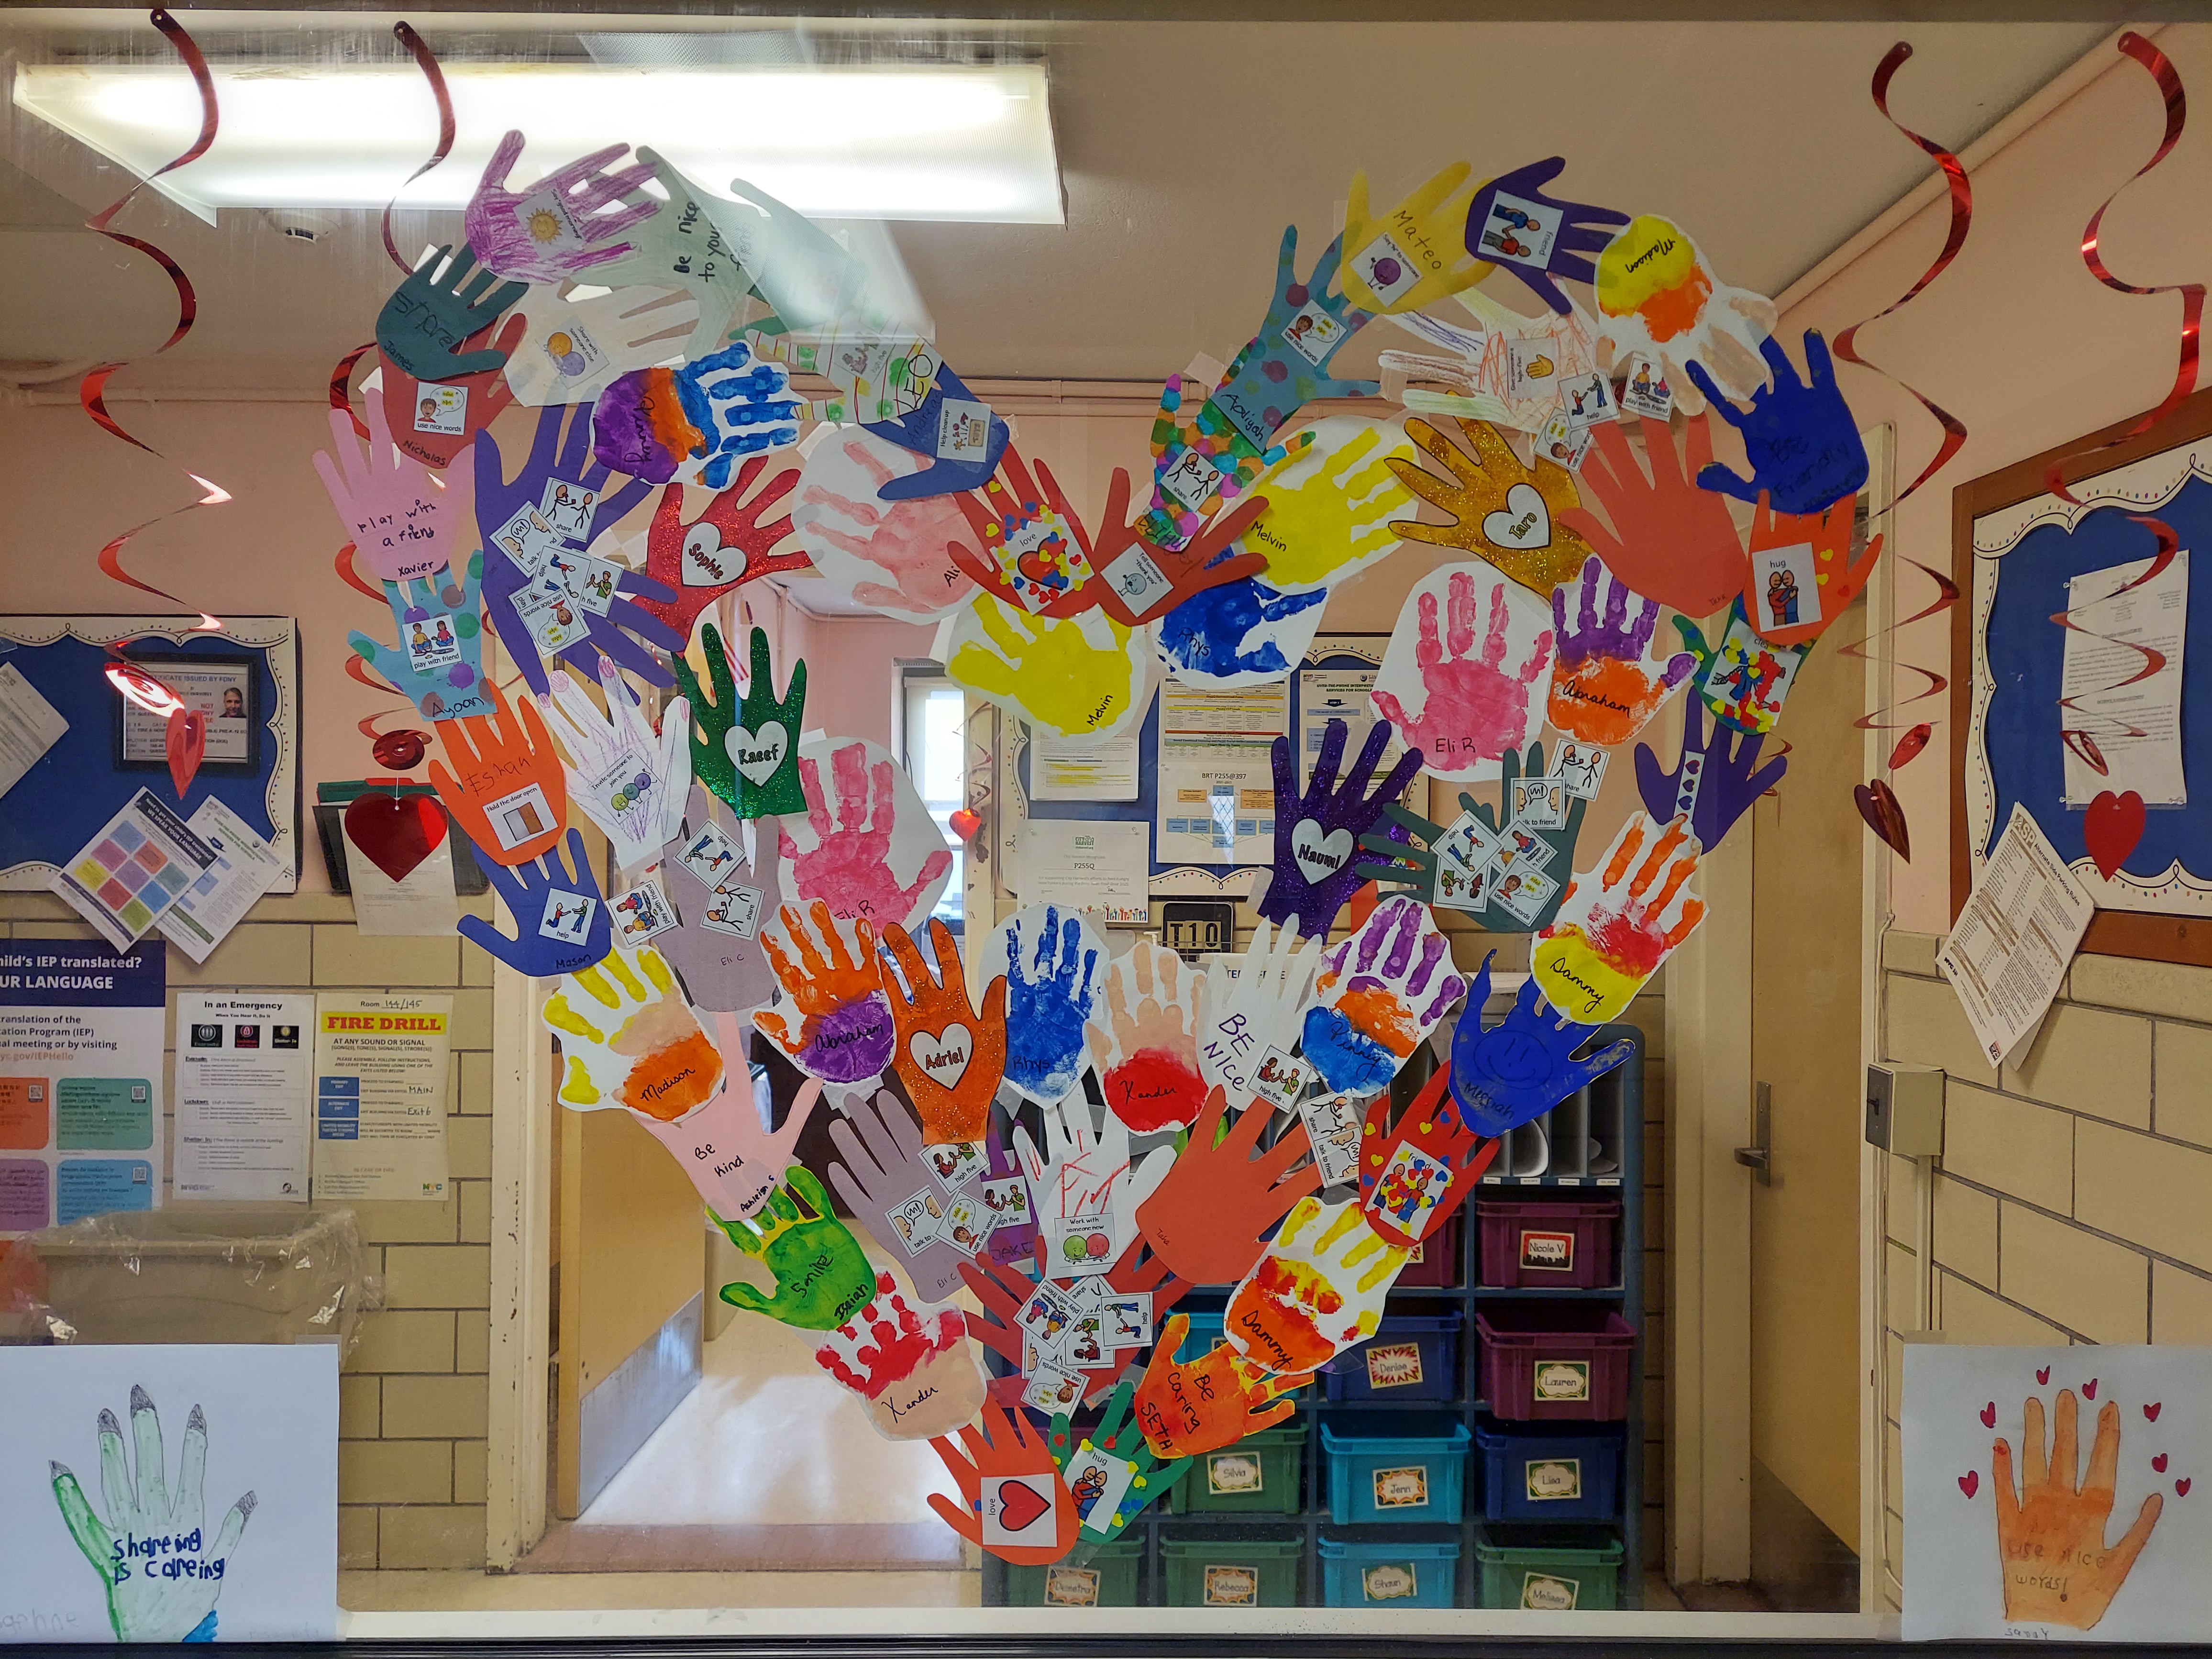 Heart made of painted hands